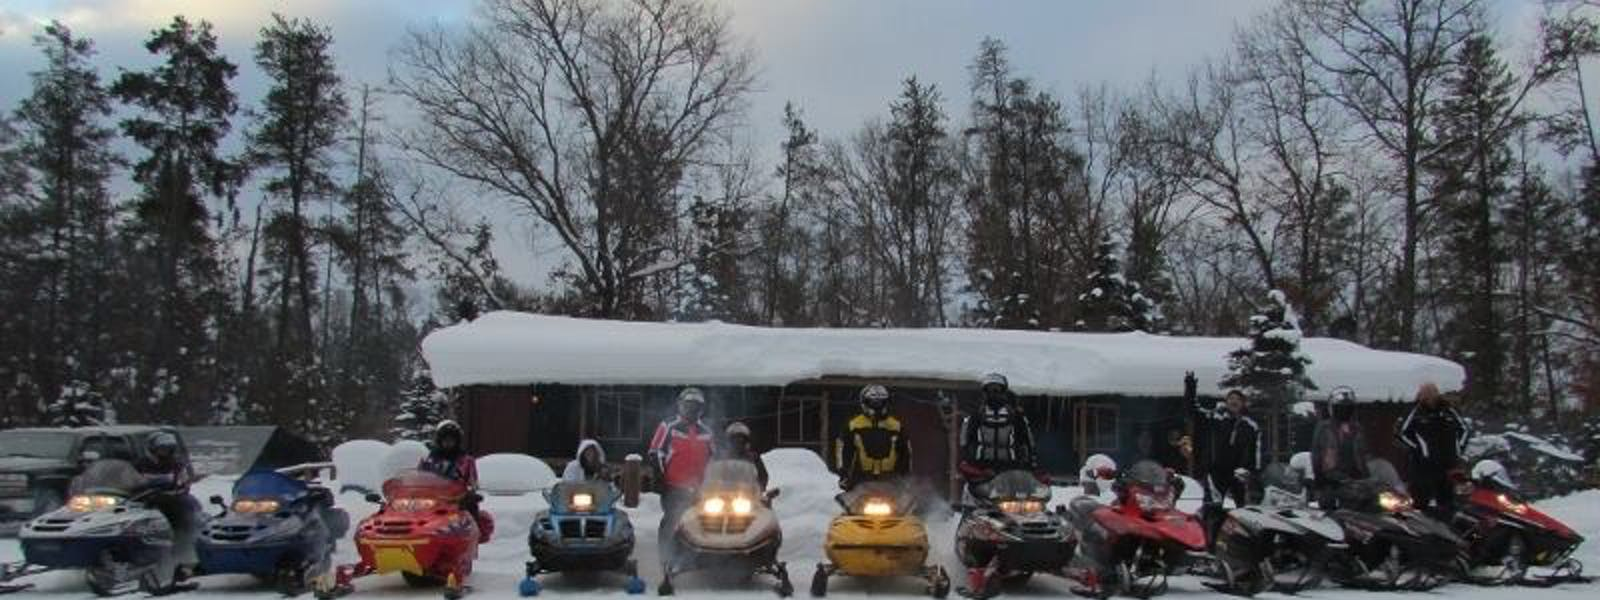 Direct Snowmobile Trail access